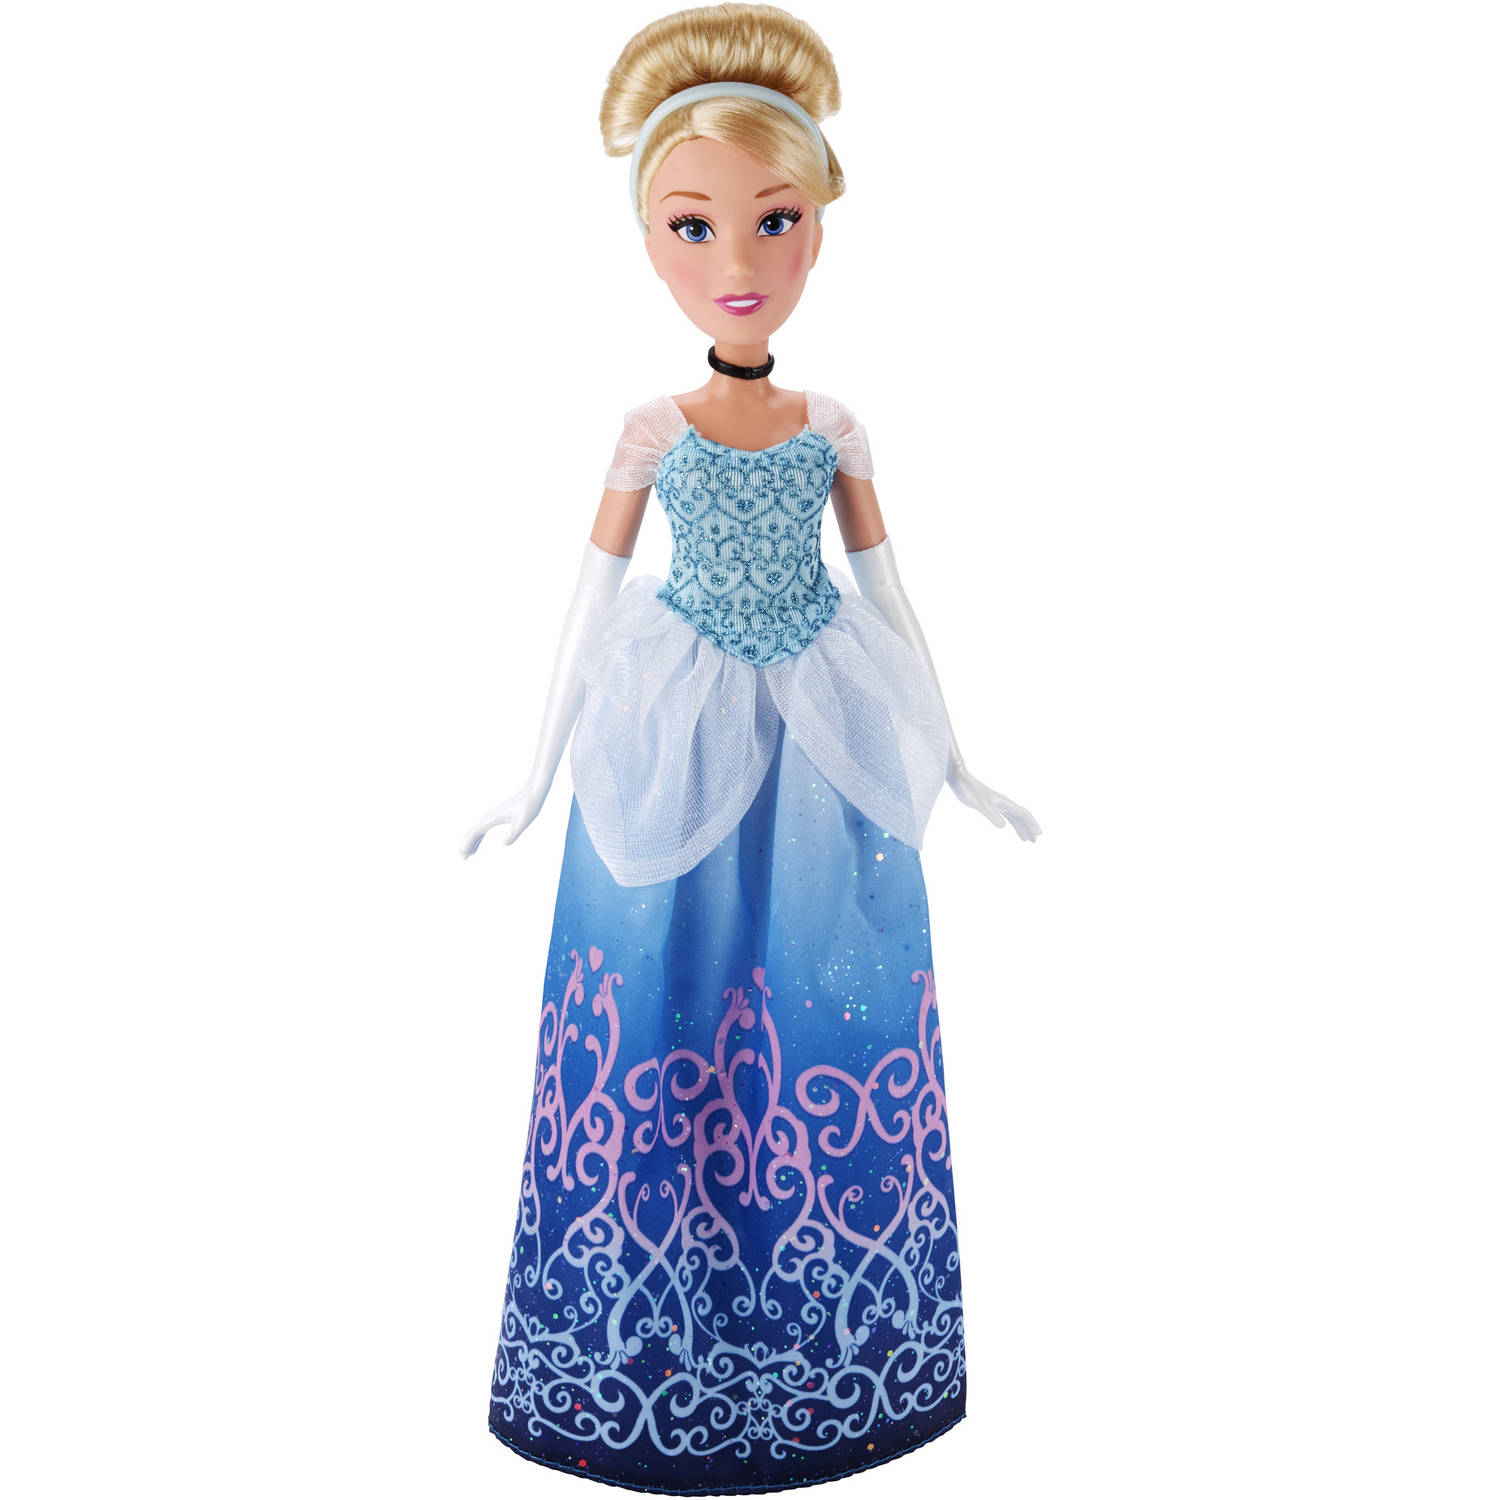 Disney Princess Royal Shimmer Cinderella Doll by Hasbro